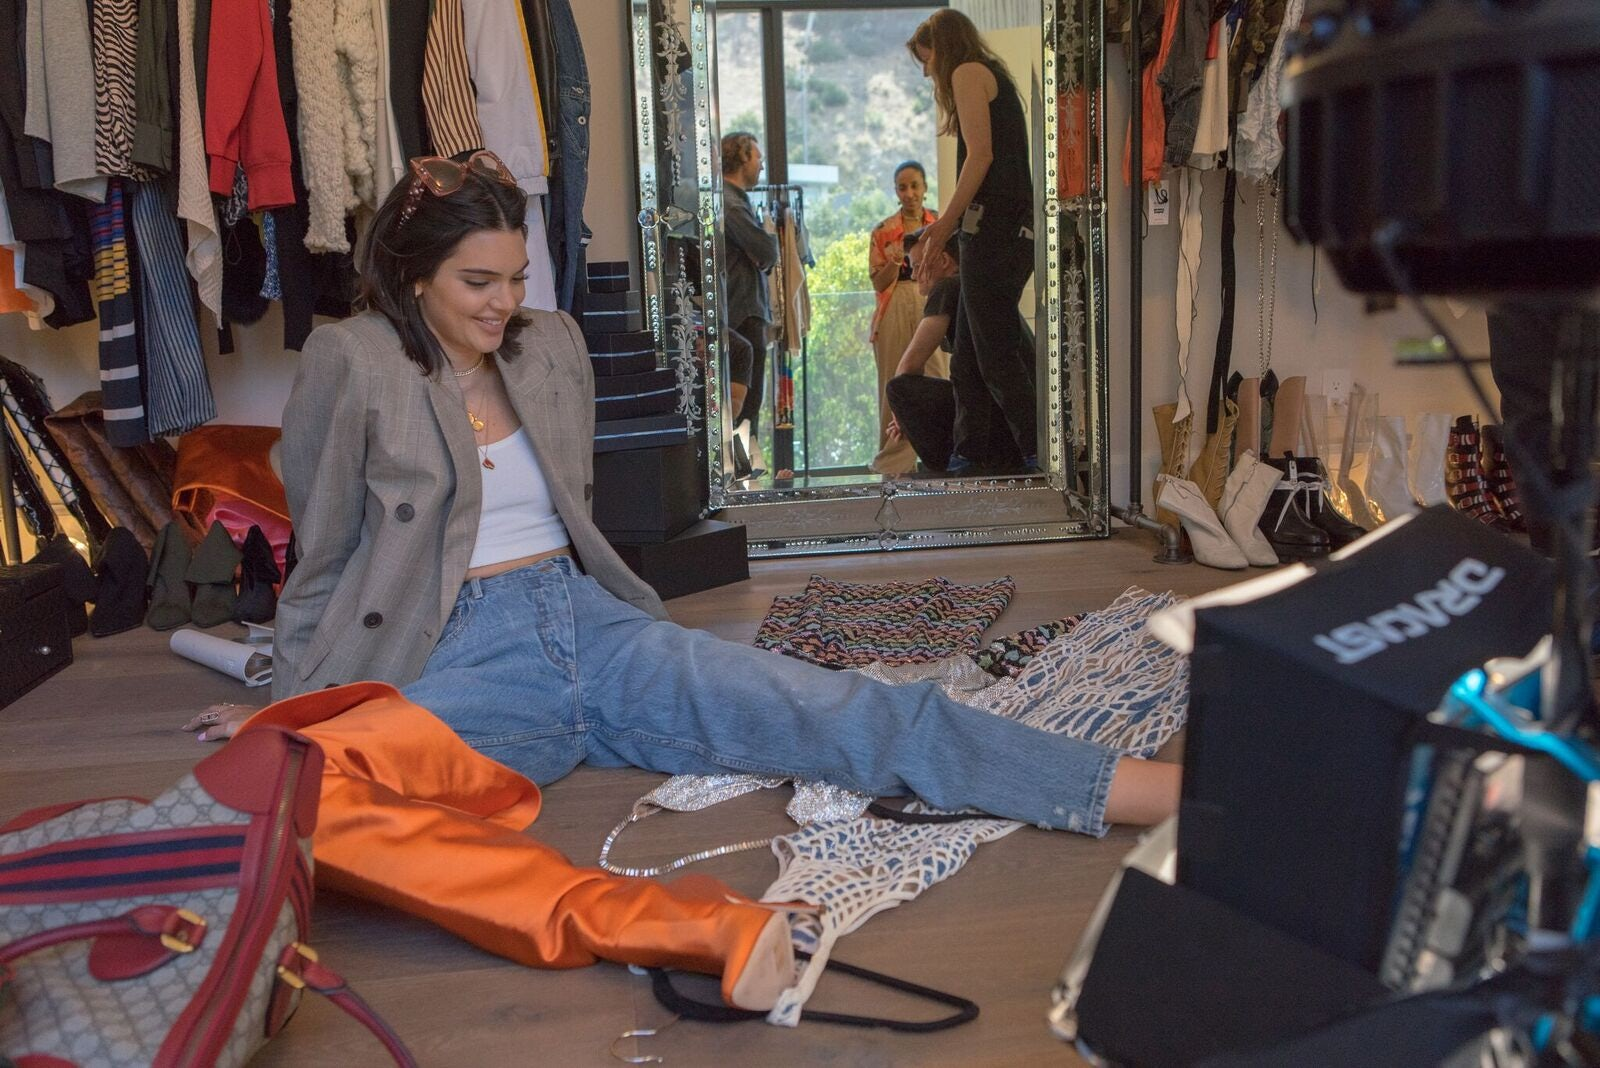 Kendall Jenner in Vogue and Google's 'Supermodel Closets' | Source: Caleb Adams for Vogue